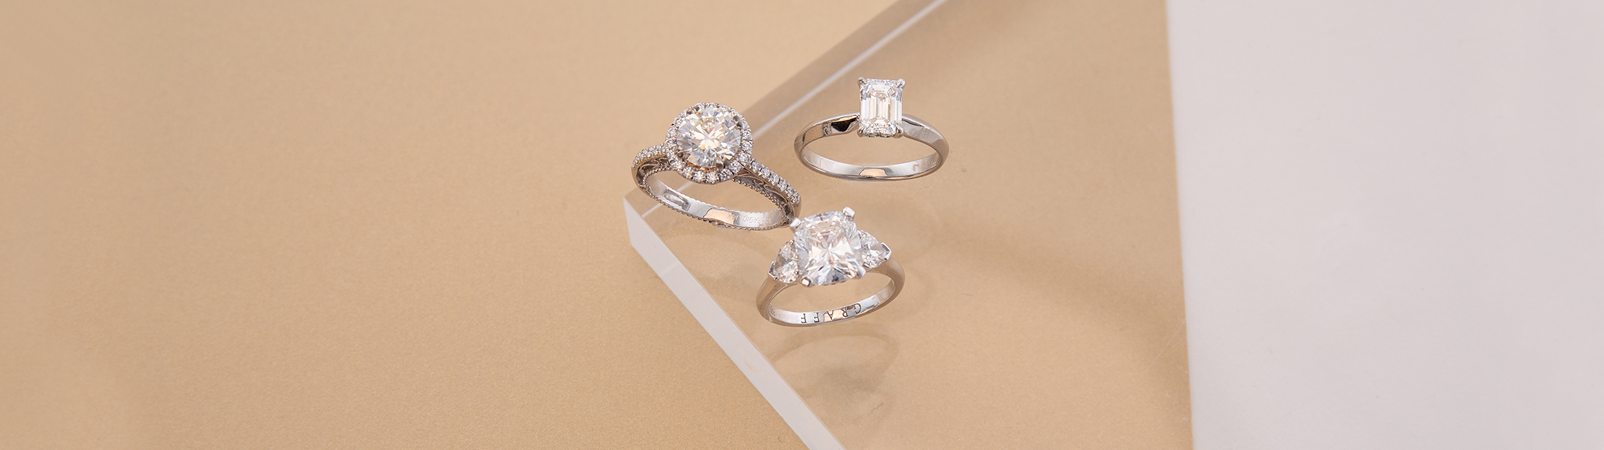 How Expensive Are Tiffany Engagement Rings Gemma By Wp Diamonds